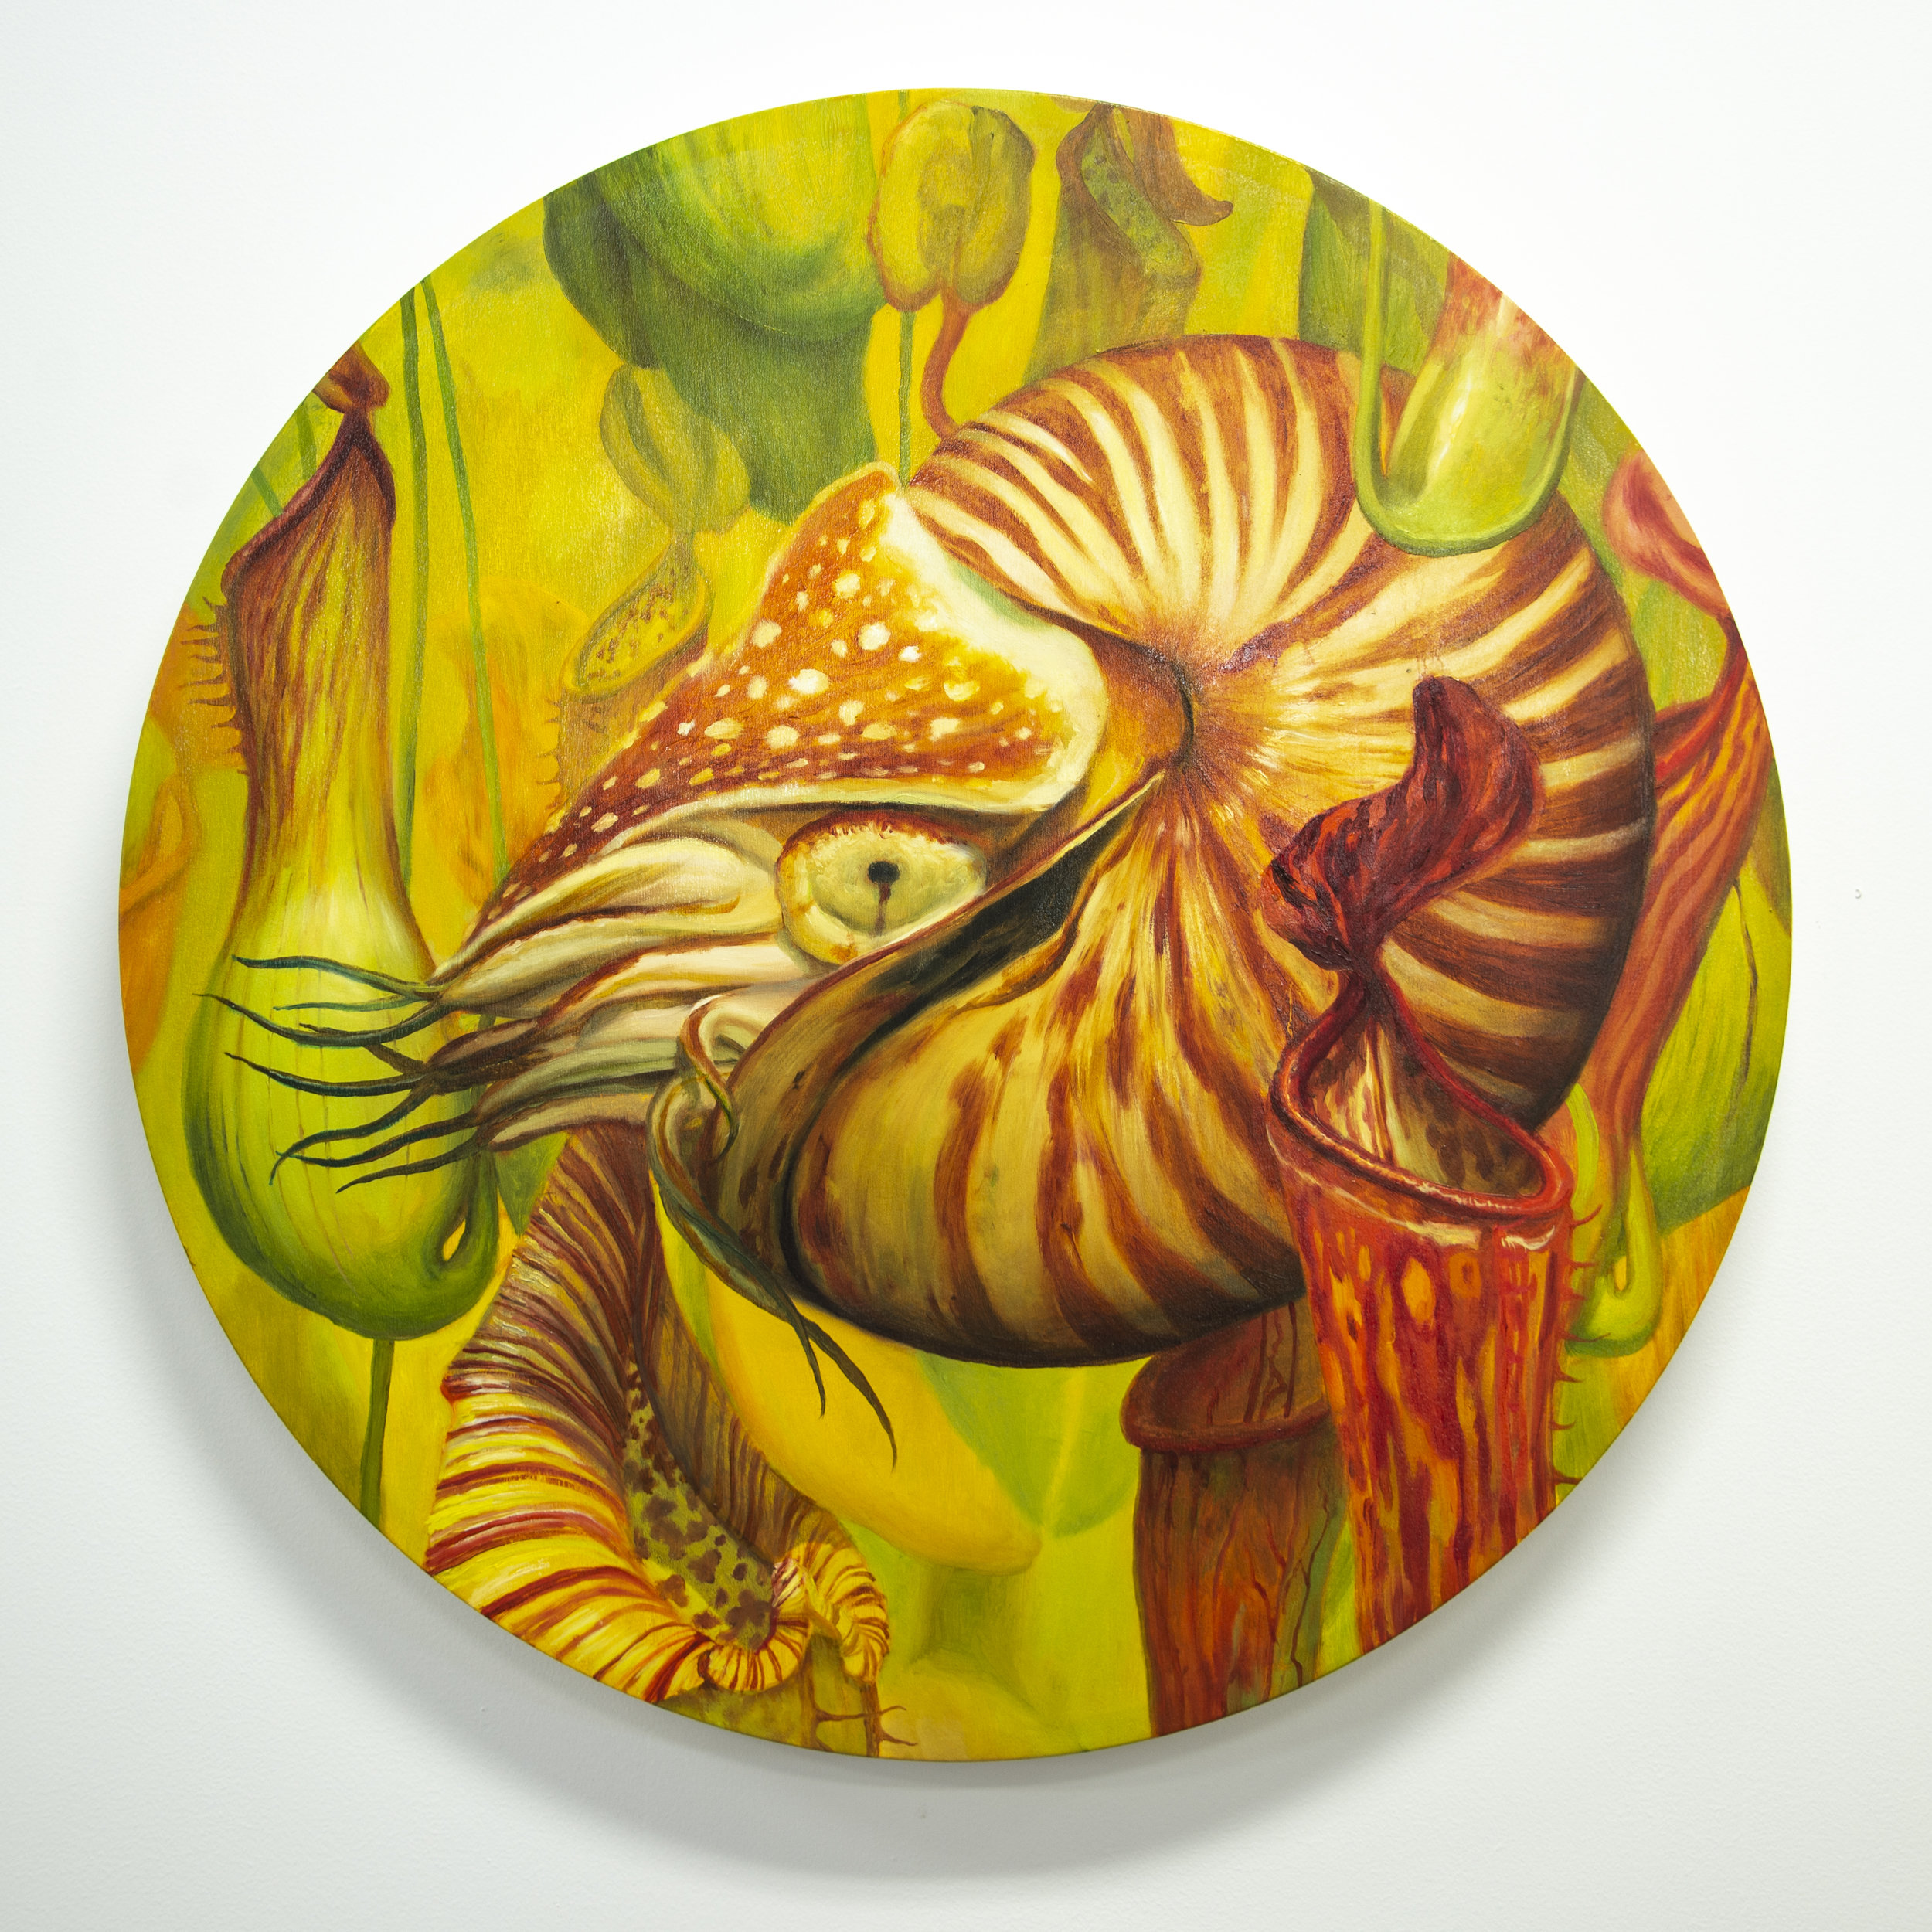 Martin Wittfooth | As above so below | 30 inches | 2019